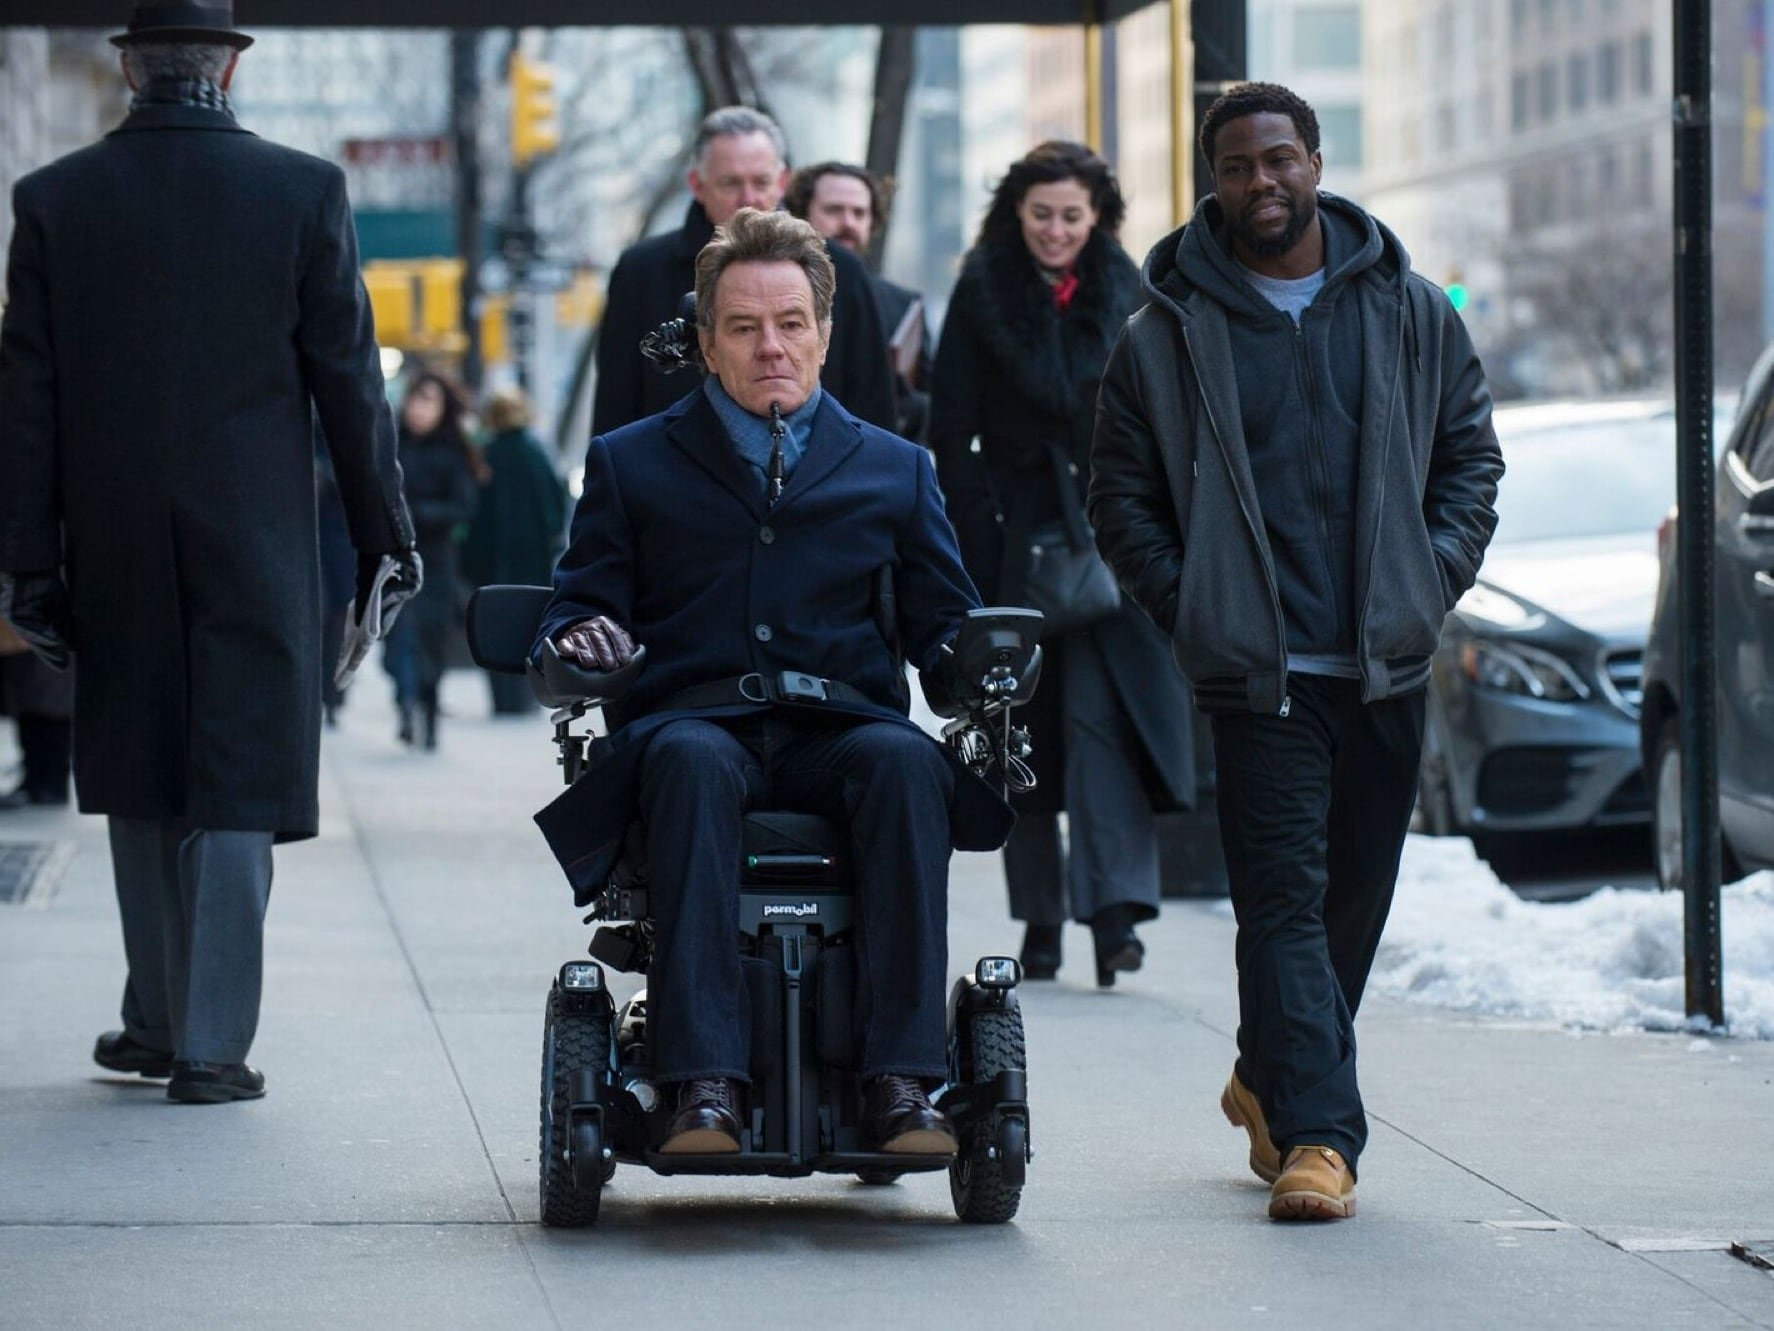 The Upside - July 13, 2019 - 7pmA comedic, heartfelt look at the unlikely and unusual relationship between Philip (Bryan Cranston), a billionaire with quadriplegia, and an unemployed man with a criminal record, Dell (Kevin Hart) who is hired to help him.A remake of the record-smashing French film, The Intouchables (2011), and based on a real life relationship between Philippe Pozzo di Borgo and Abdel Sellou, this story has also been depicted in the French documentary La vie comme un roman: A la vie, à la mort(2003), the Indian film Oopiri (2016), and the Argentinian film Inseparables (2016).PG | 126 min